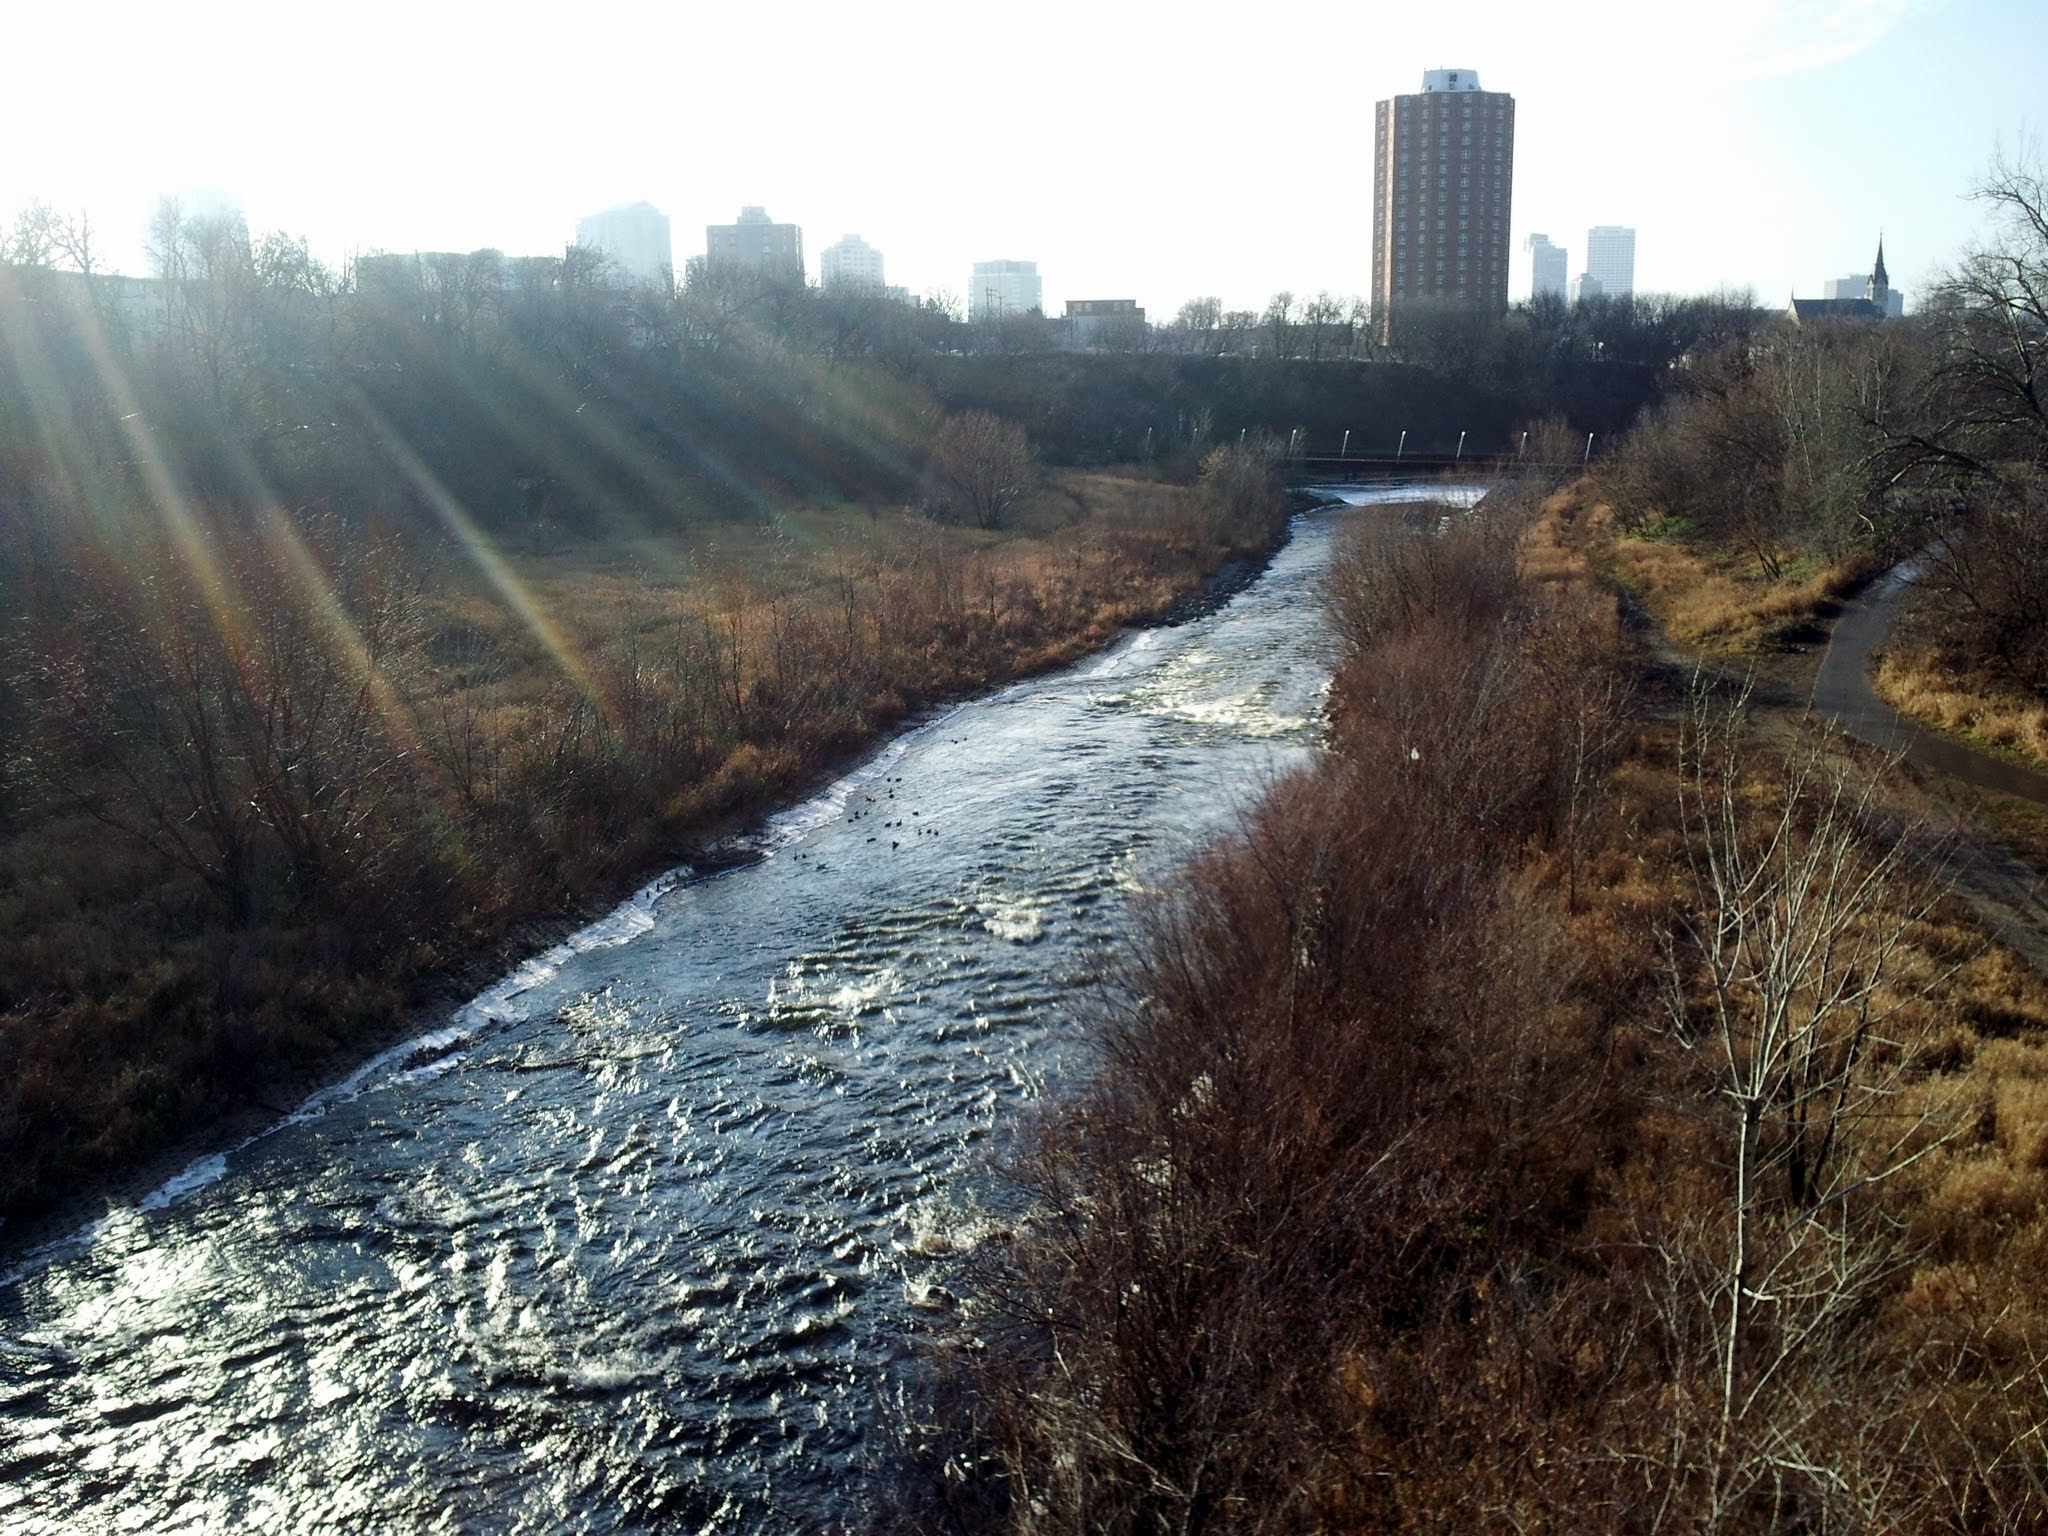 The river and skyline from the North Avenue Bridge